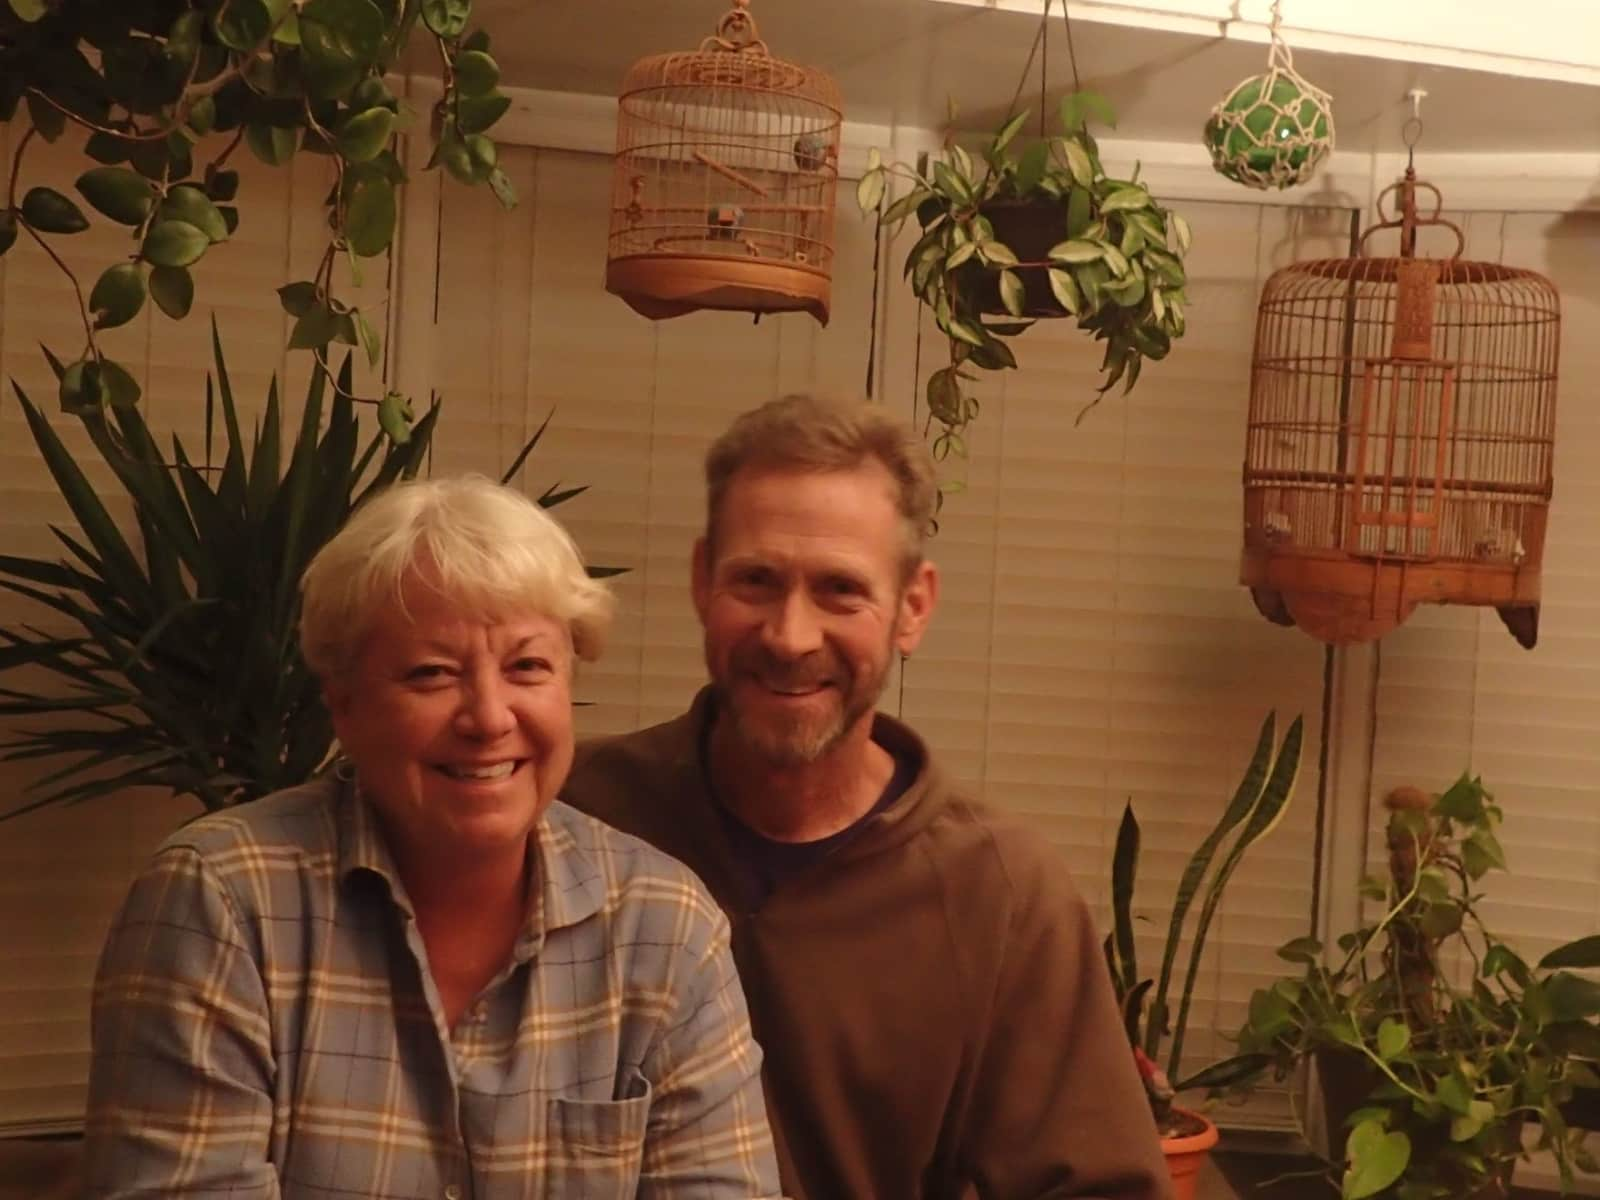 Lynn and steve & Steve from Albuquerque, New Mexico, United States